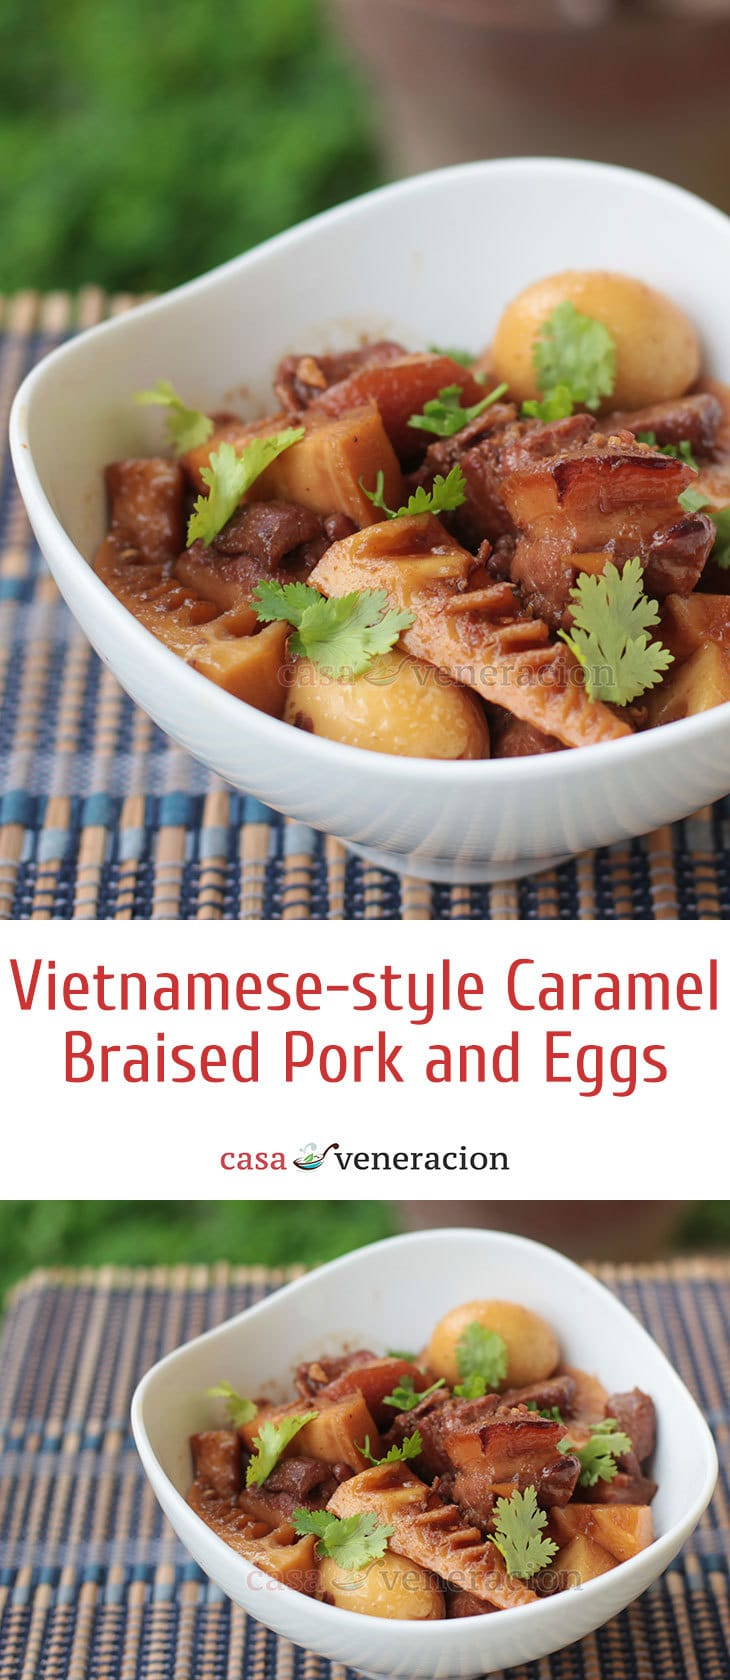 A long name for a dish but it still doesn't capture its essence fully. For a truly delicious Vietnamese-style caramel braised pork and eggs, the pork must be slow cooked in fresh coconut juice.